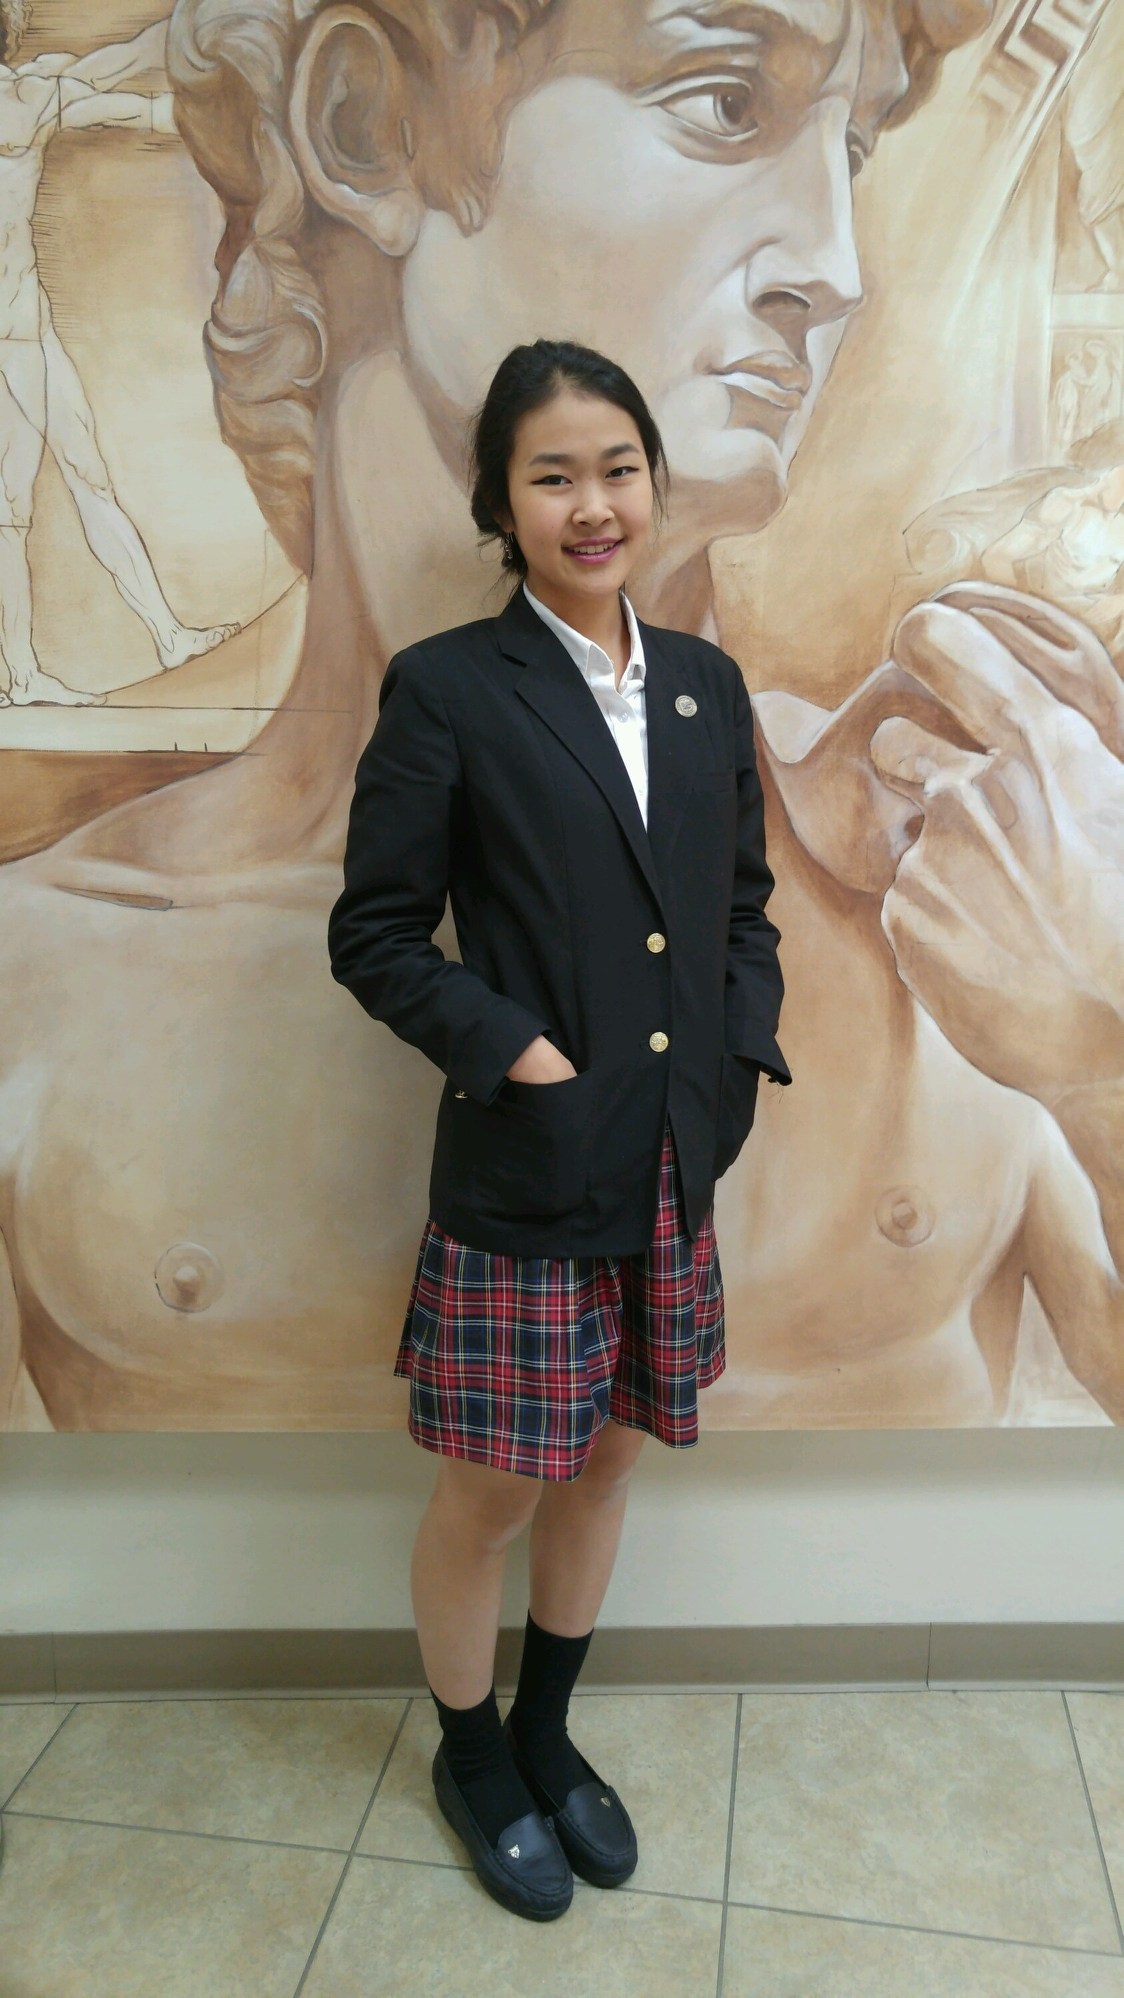 Chandler student looks to pursue intellectual and artistic endeavors TinaPeng2